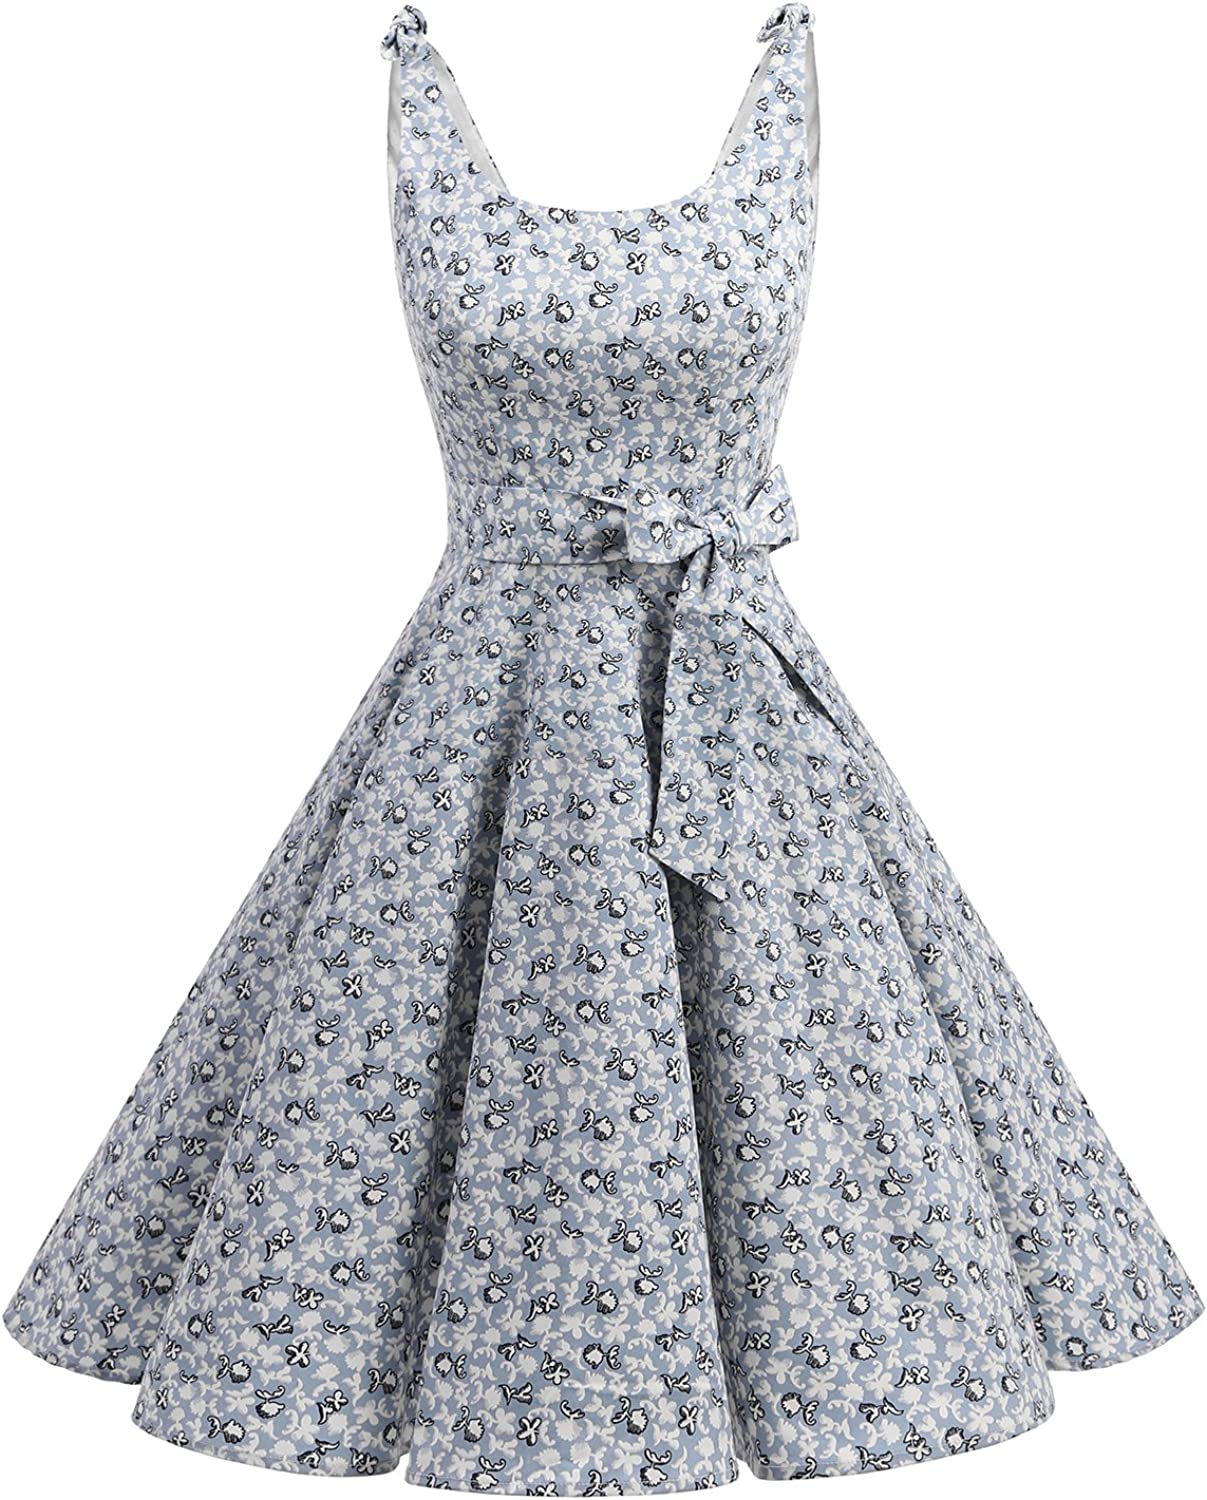 TALLA XL. Bbonlinedress Vestidos de 1950 Estampado Vintage Retro Cóctel Rockabilly con Lazo Little Flowers XL